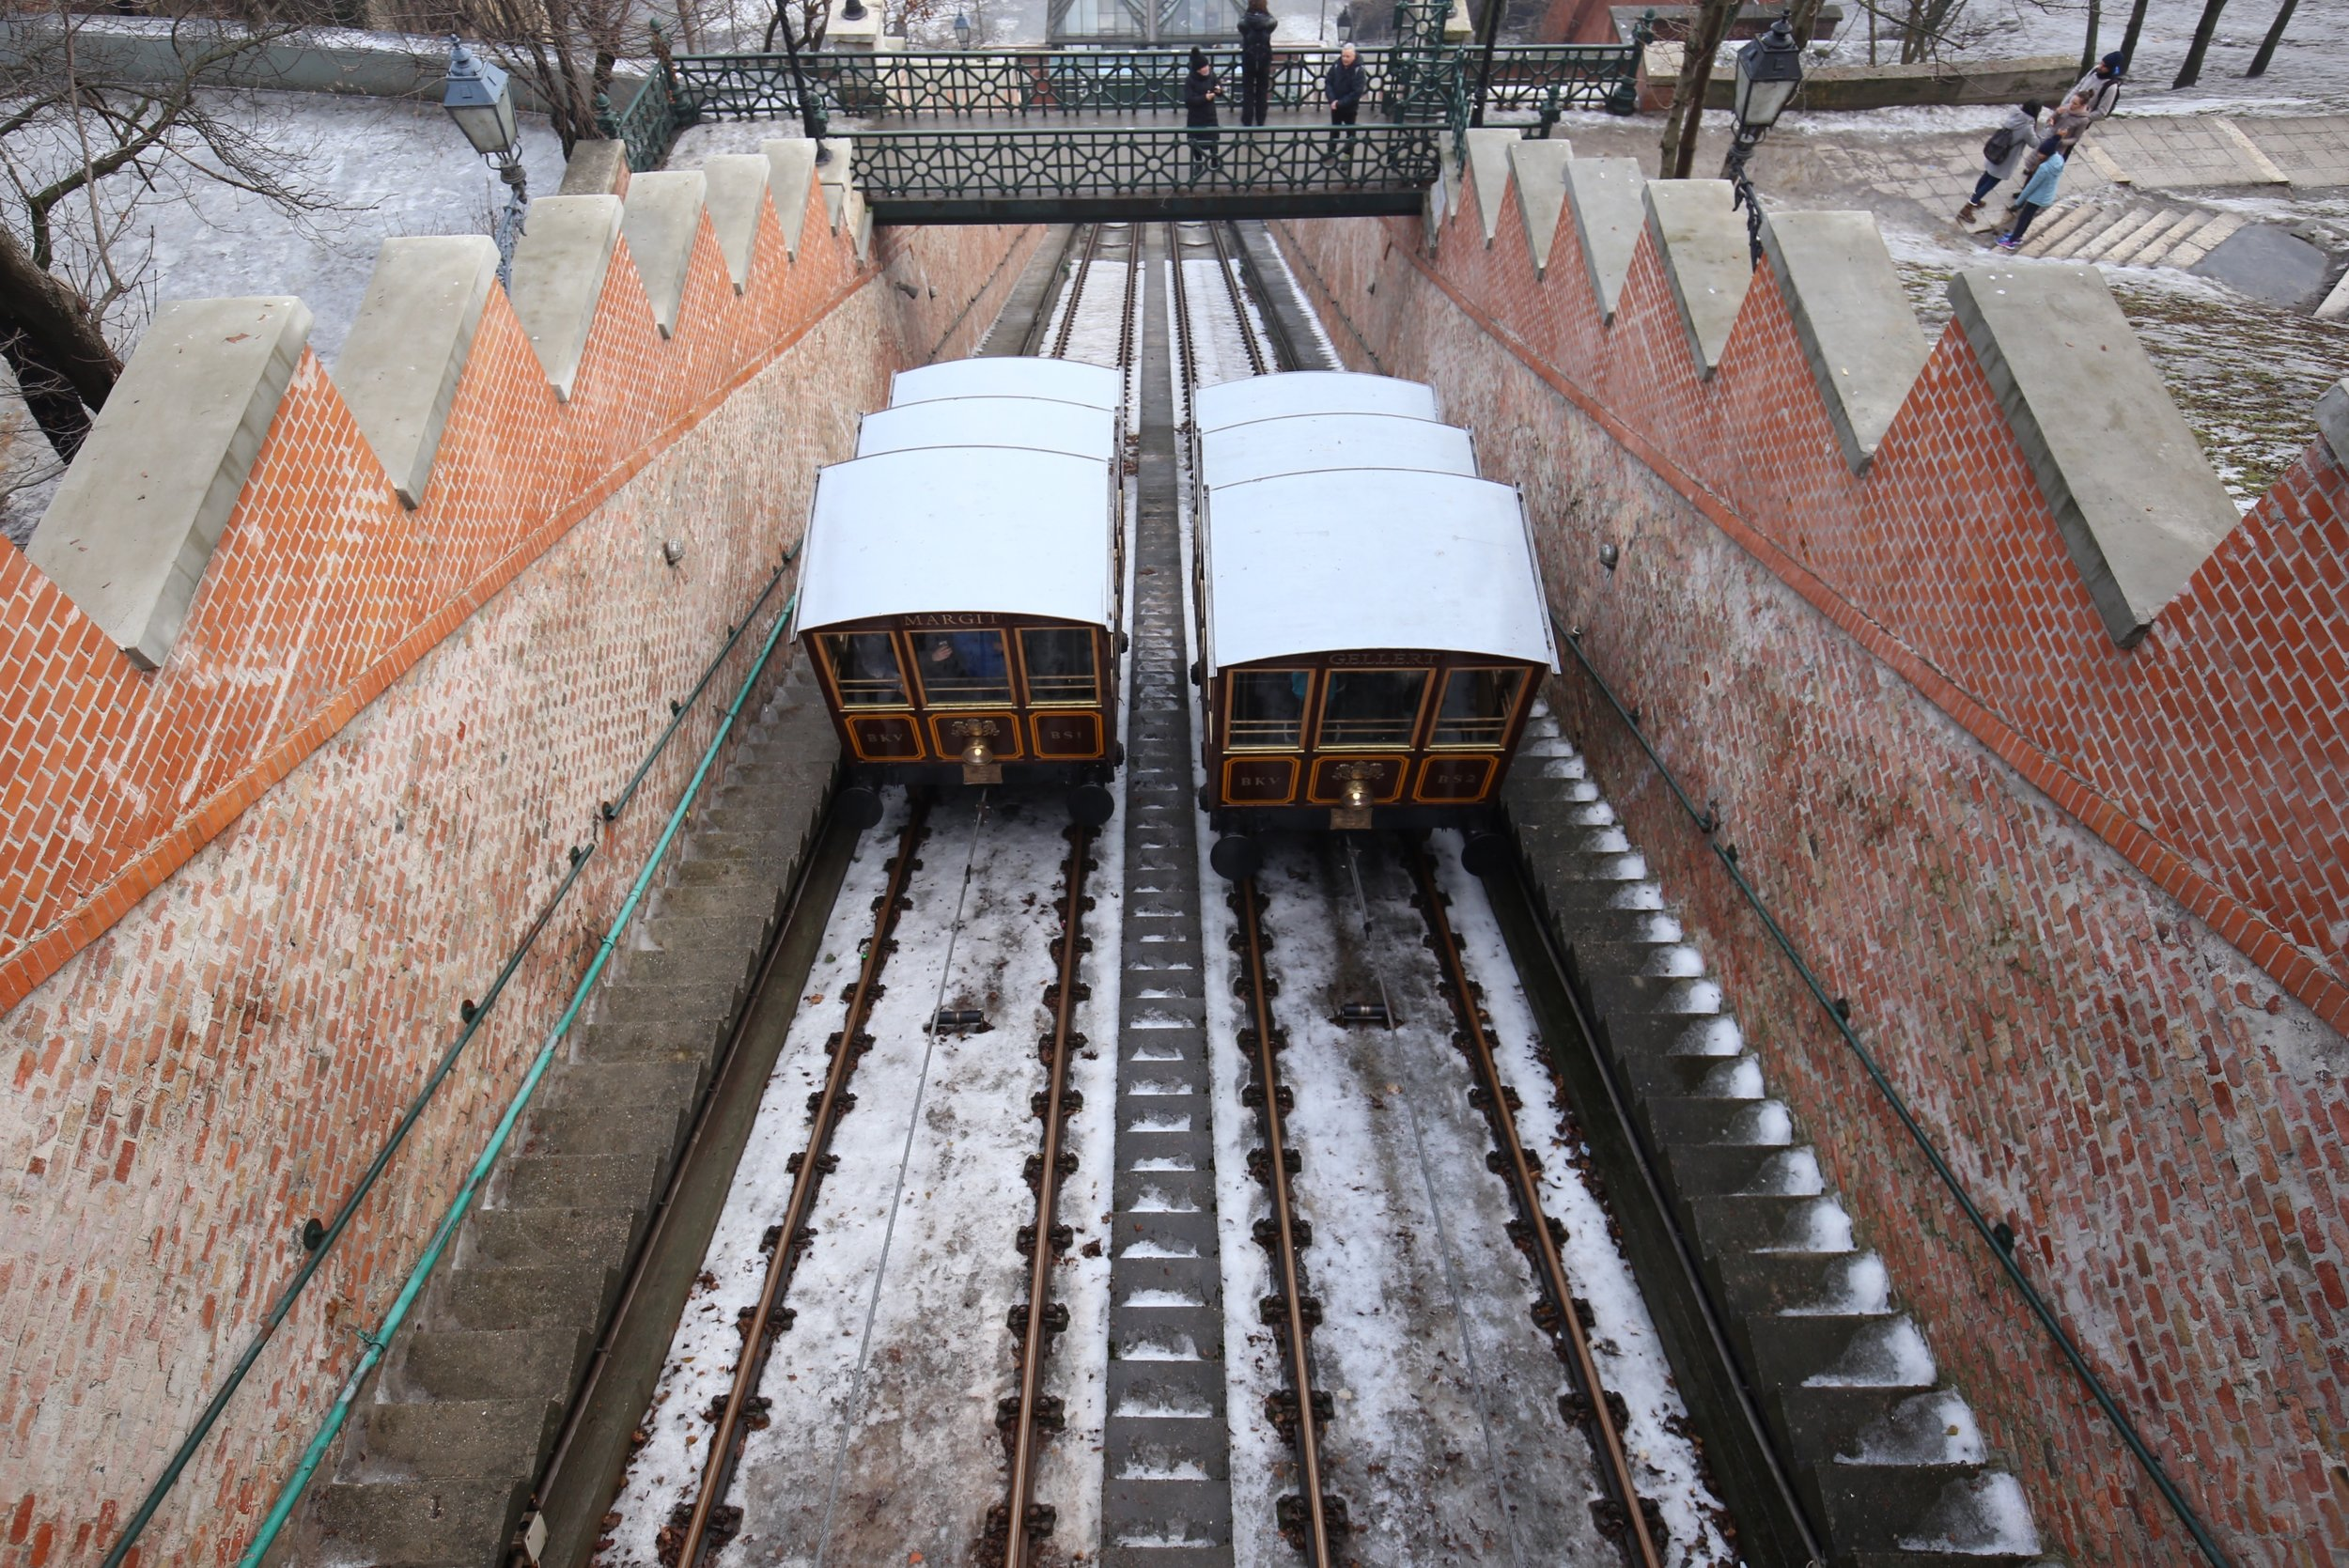 The beautiful Gellert funicular in winter - real life Grand Budapest Hotel style.